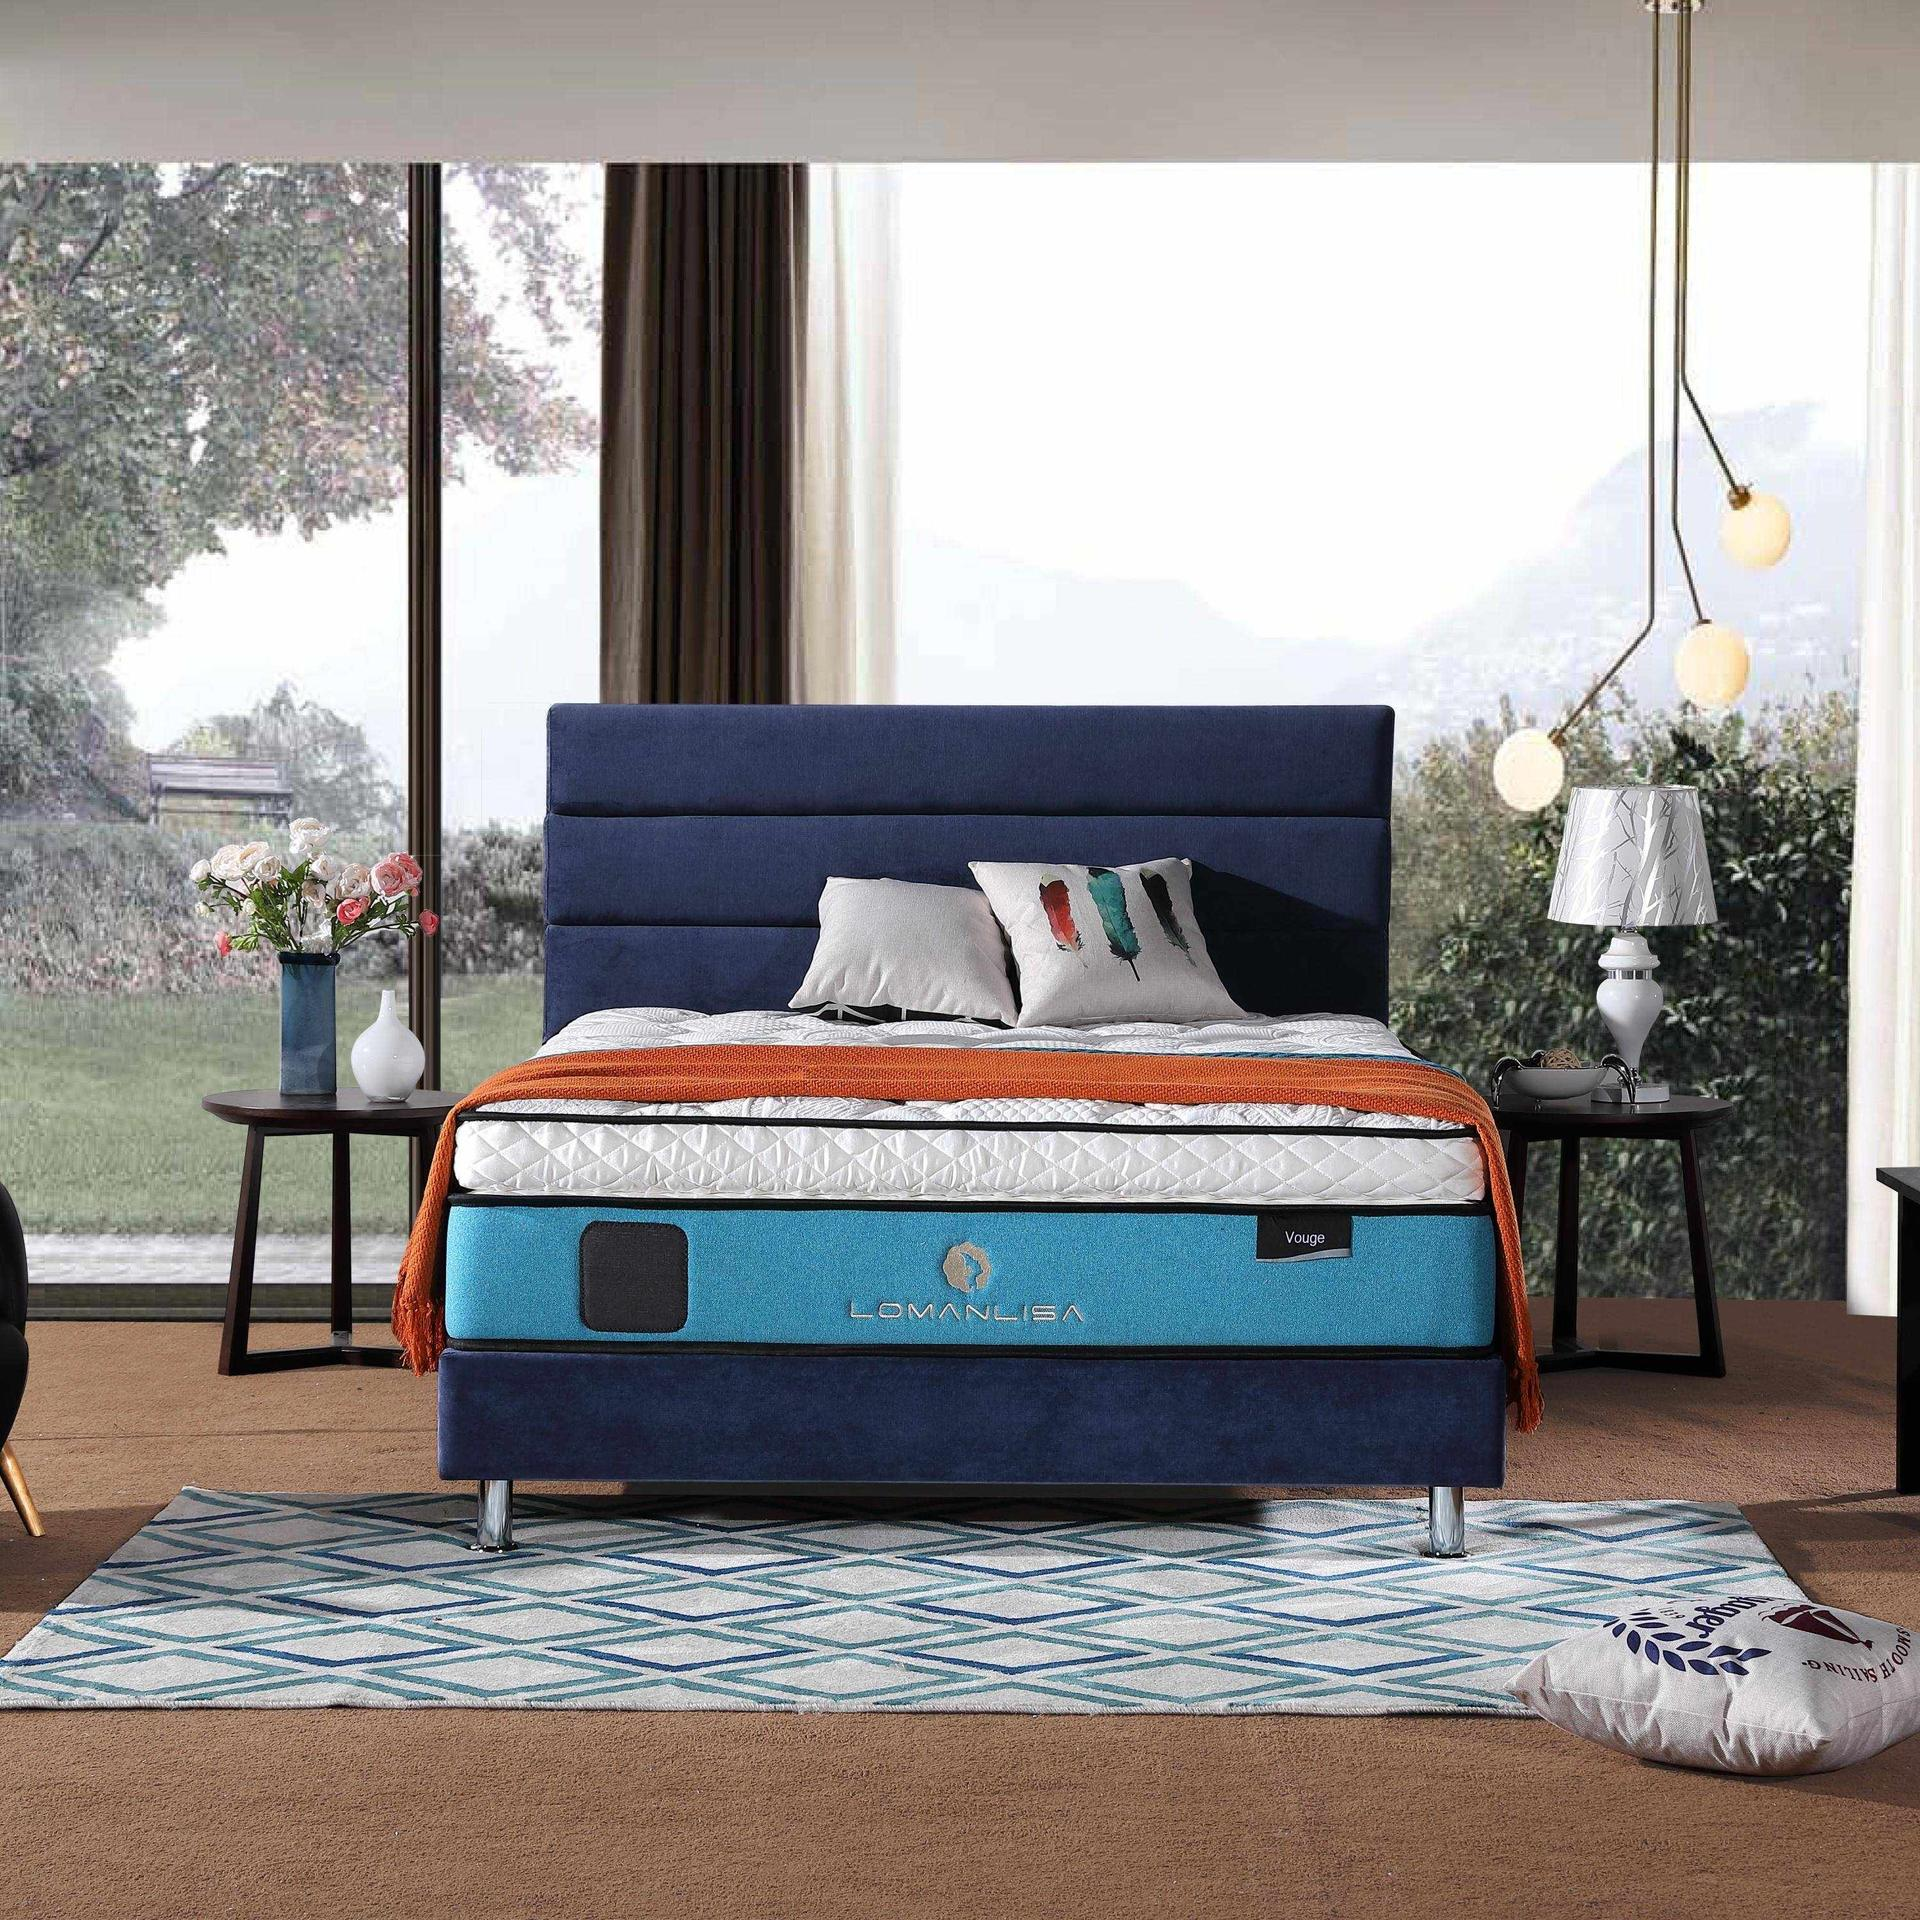 33PA-15 | Luxury Cooling Gel Memory Foam 5 Zoned Pocket Spring Mattress with Euro Top Design